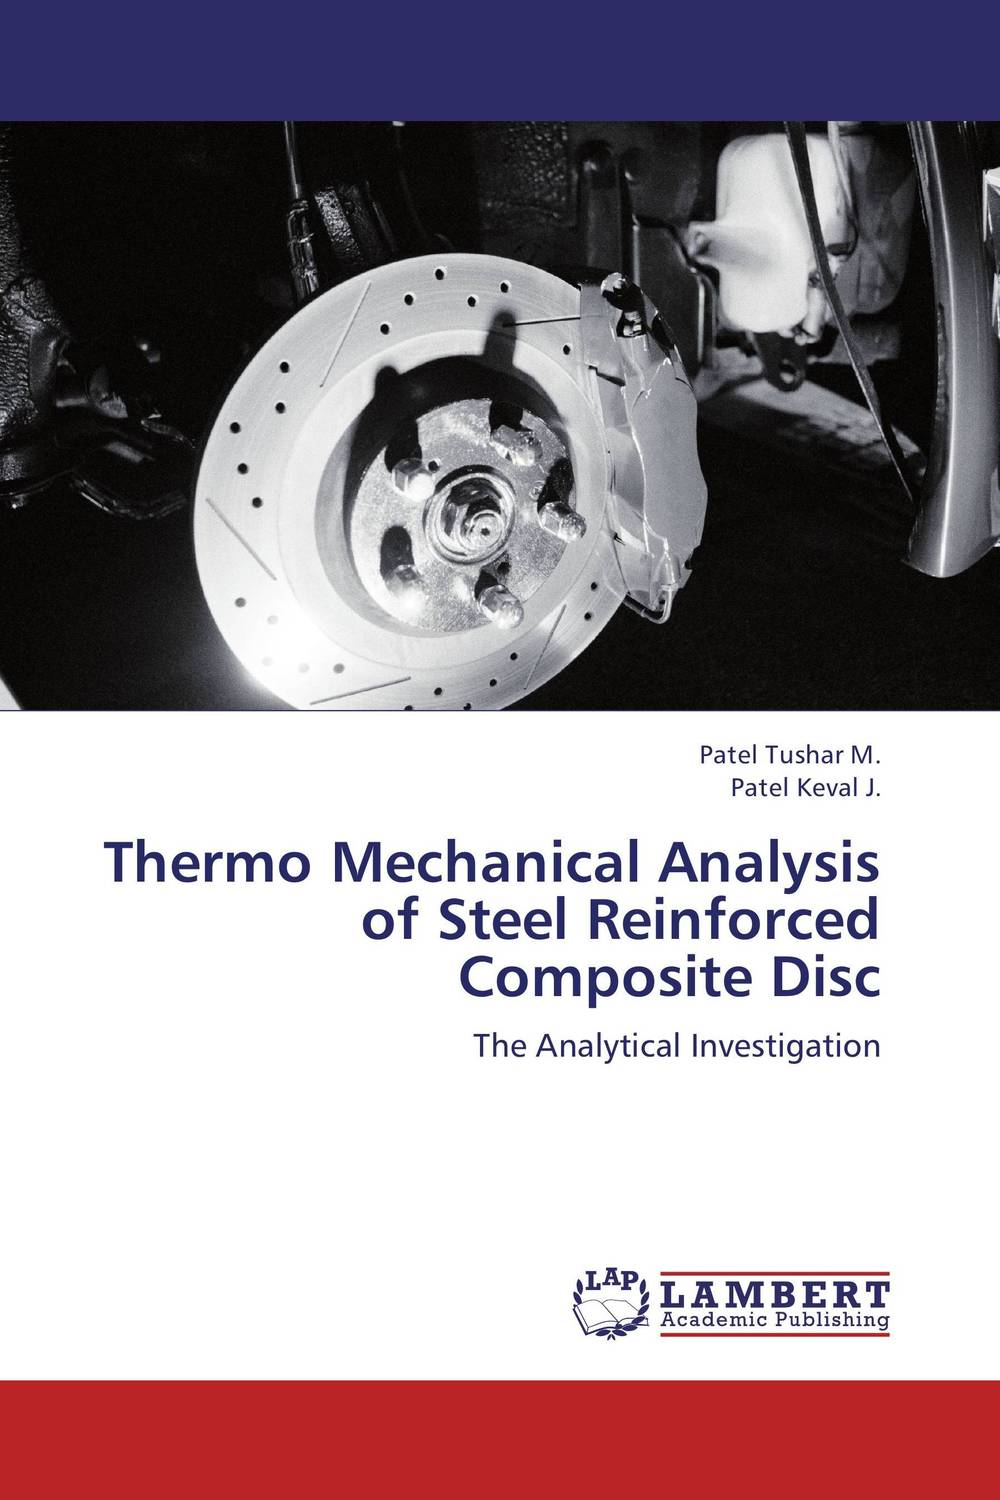 Thermo Mechanical Analysis of Steel Reinforced Composite Disc